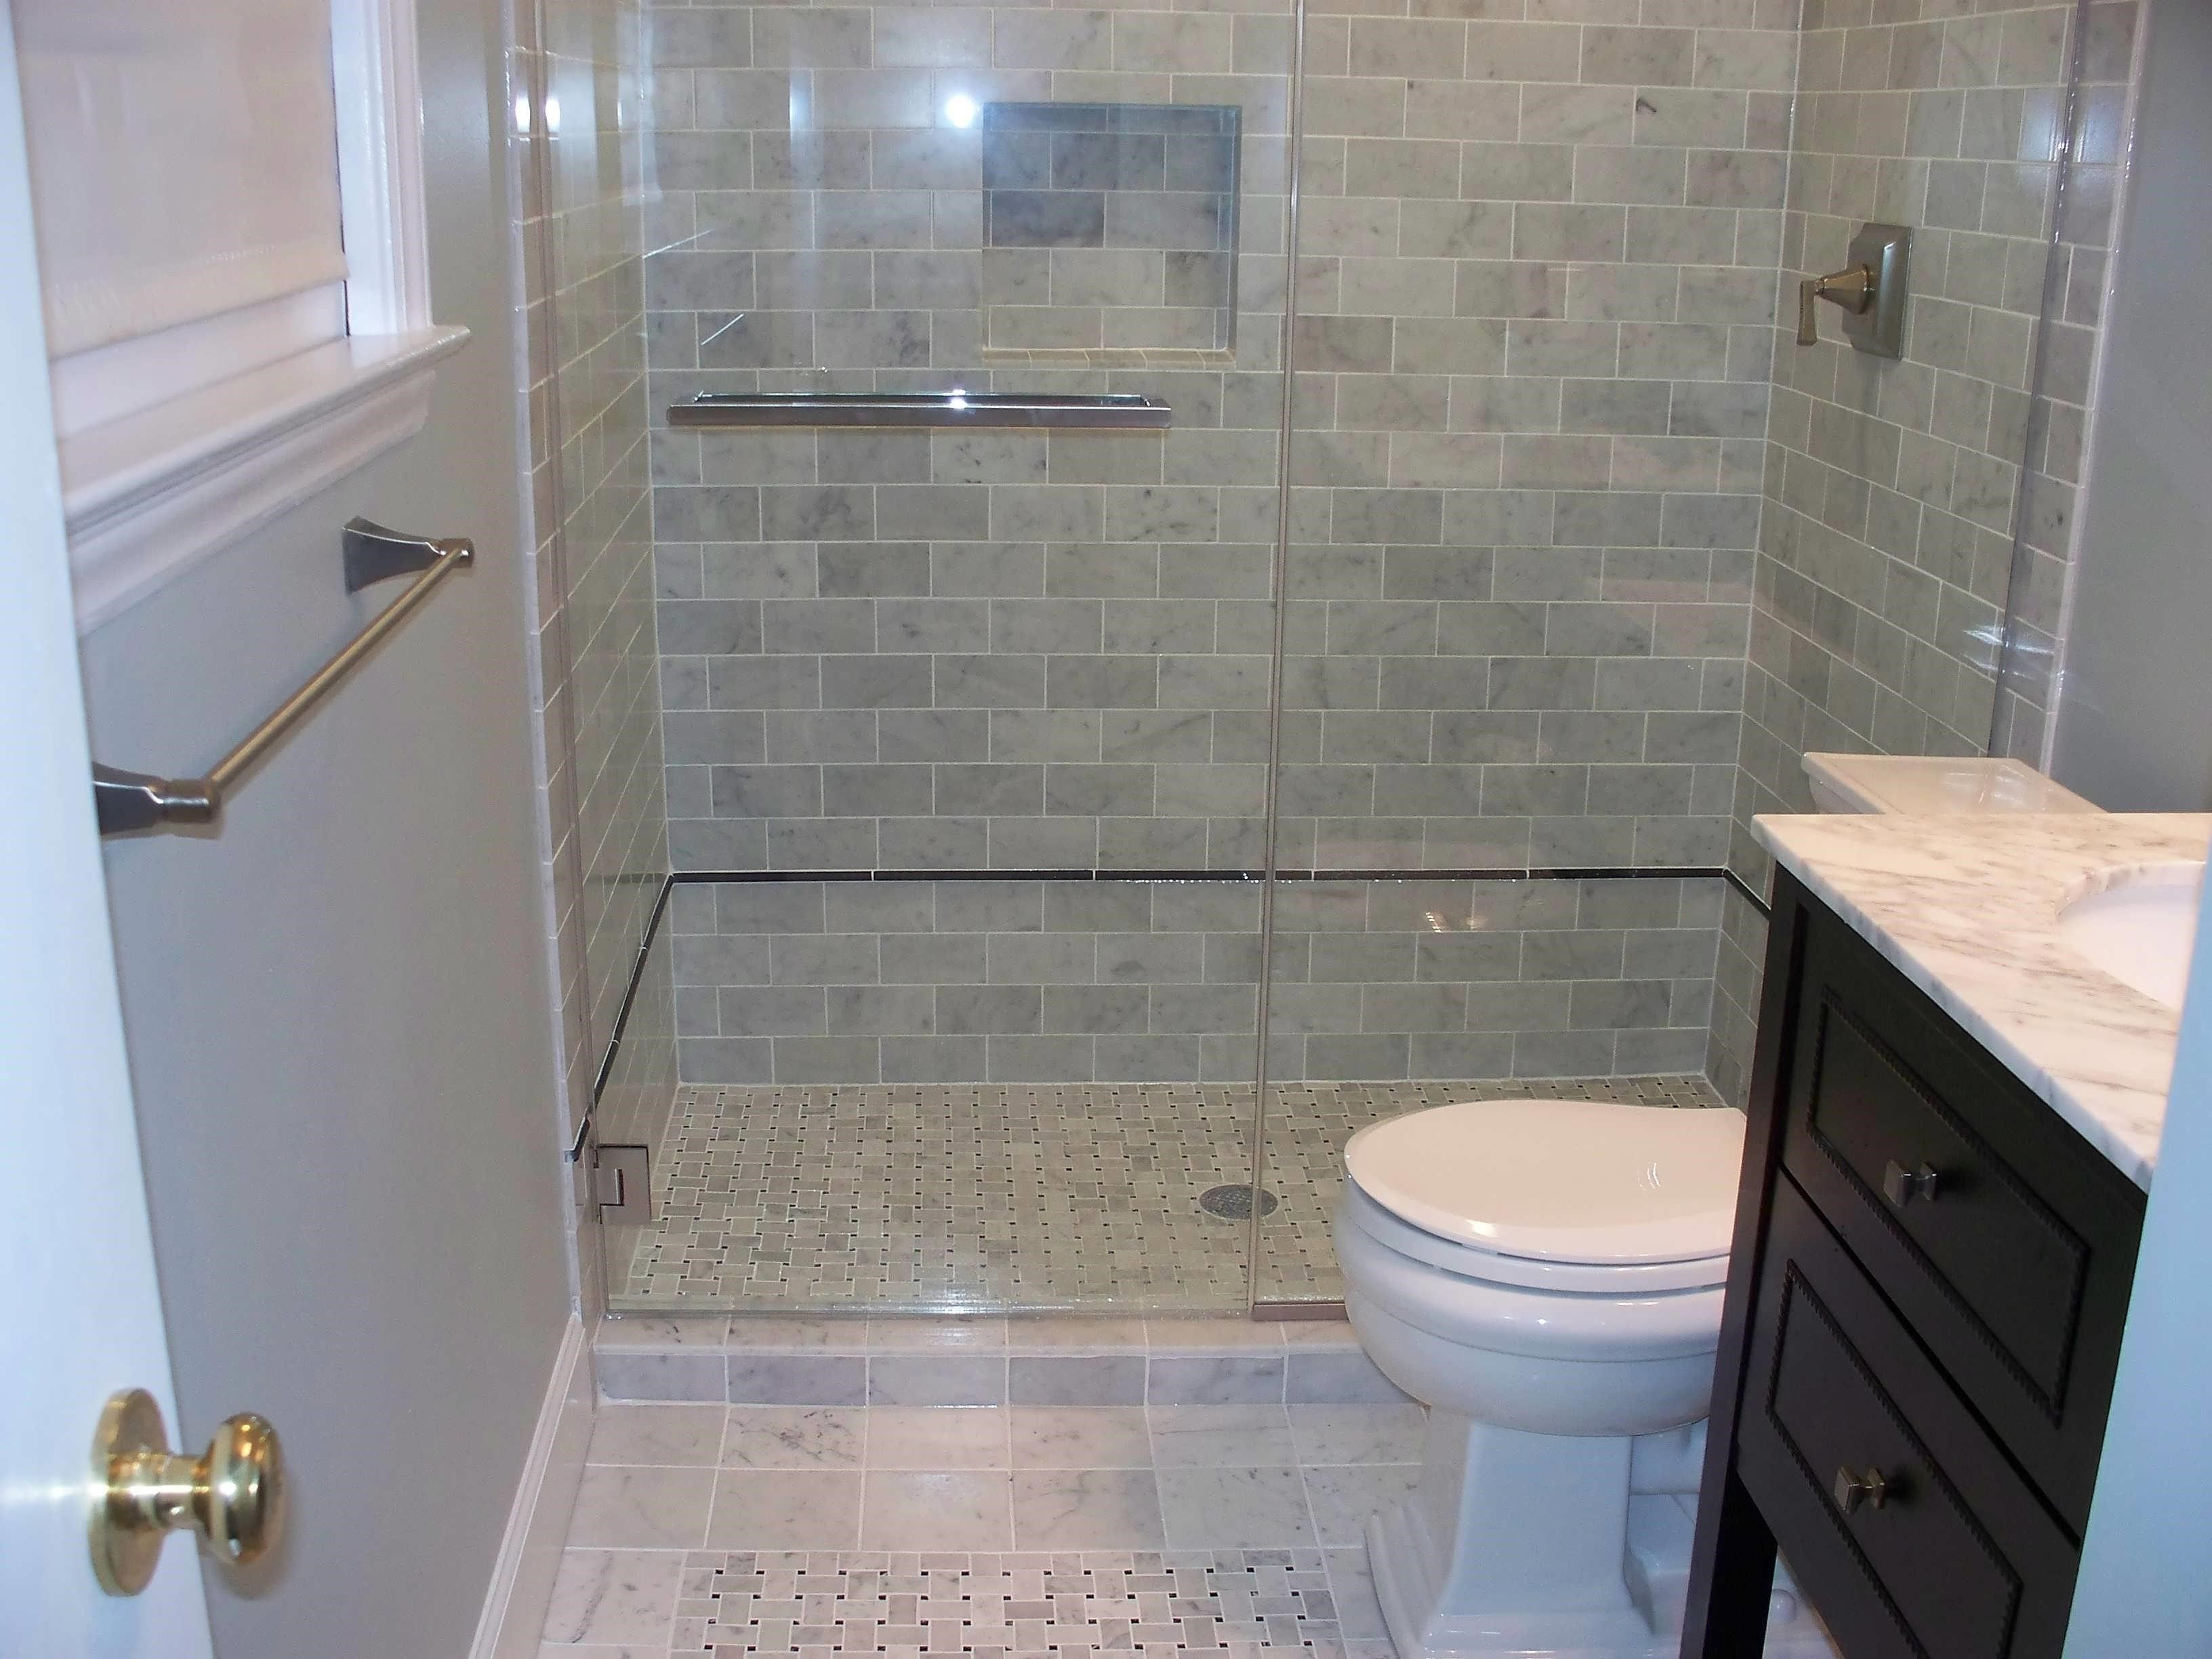 Fantastic Small Bathroom Ideas With Shower Only In House Remodel Ideas With Small Bathroom Idea Small Bathroom Colors Small Bathroom With Shower Sleek Bathroom